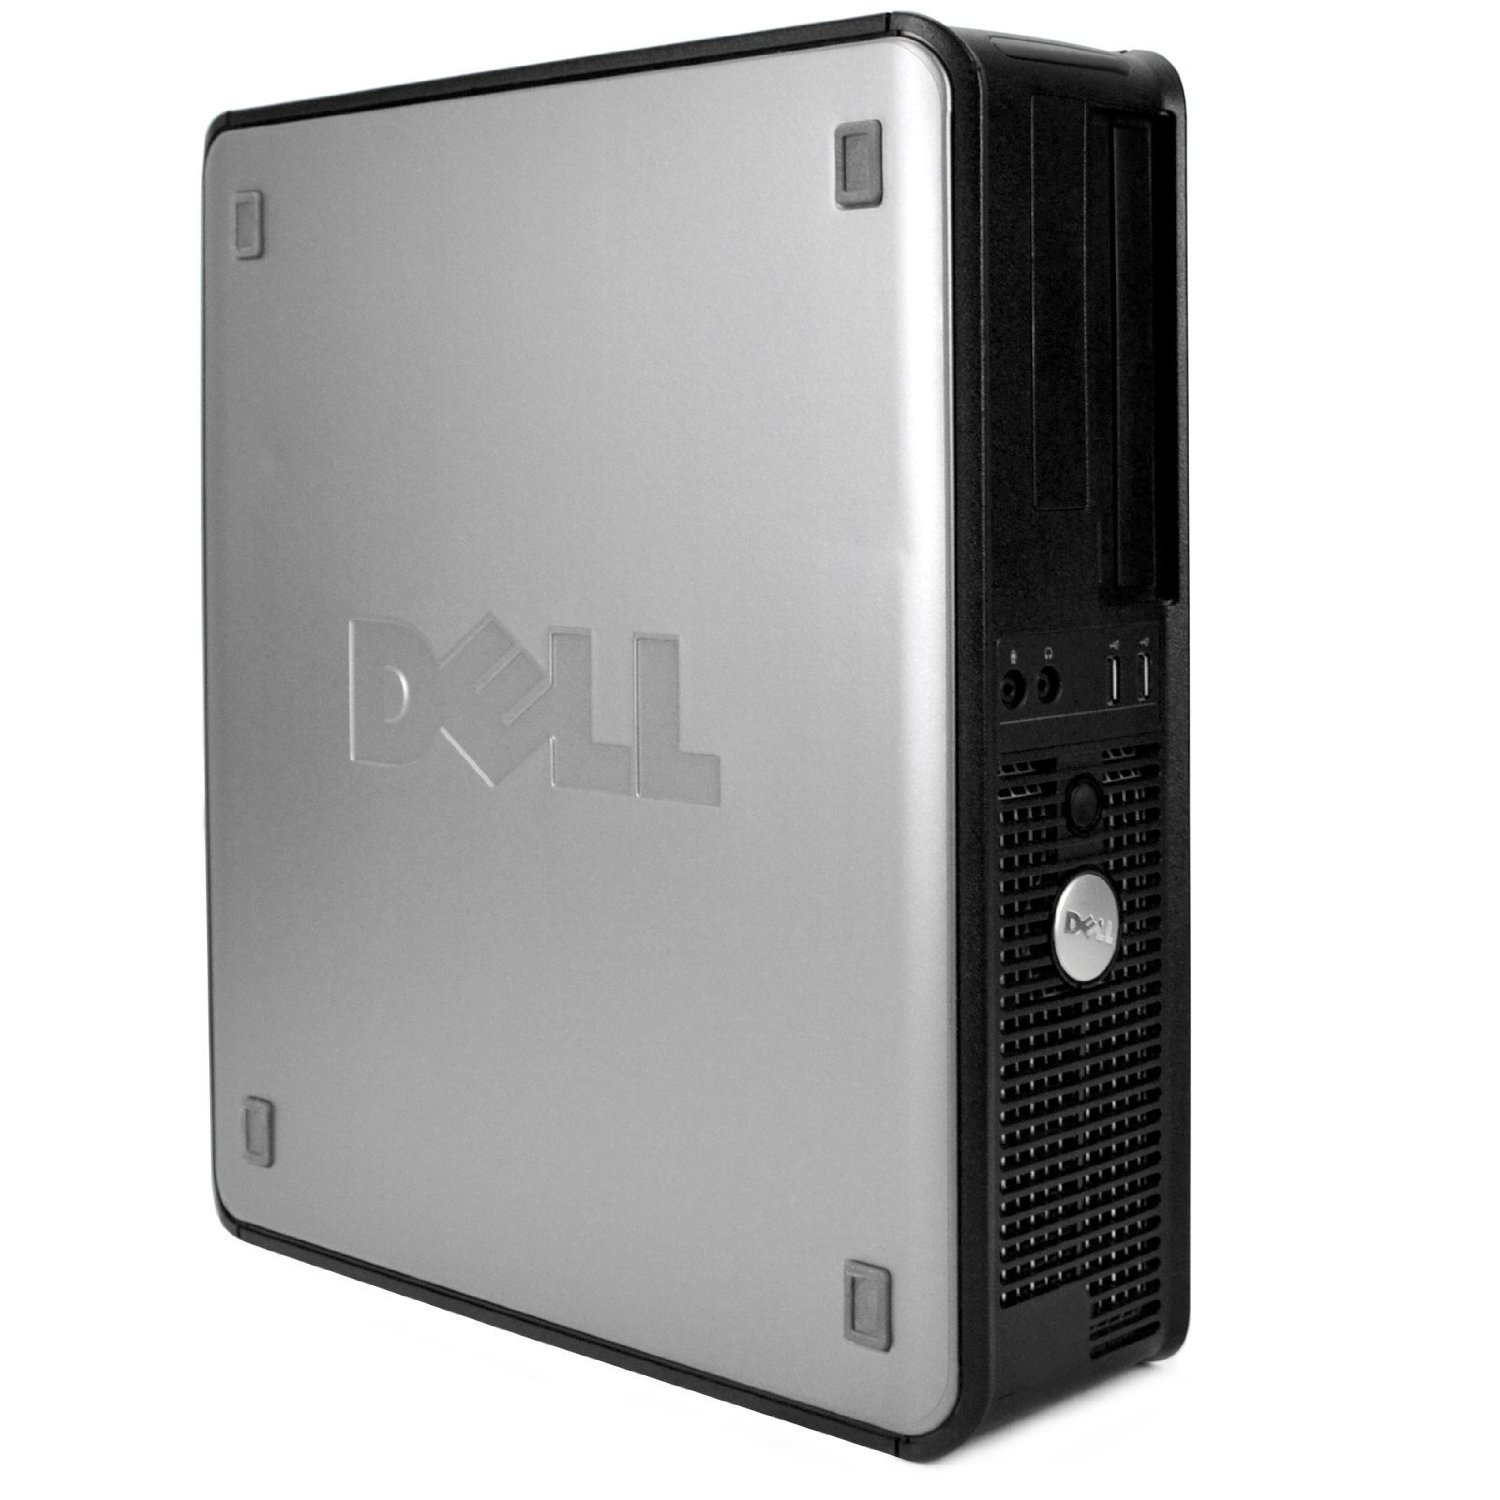 Dell OptiPlex Desktop (Intel Core2Duo 2.0GHz CPU, 160GB, 4GB Memory, Windows 7 Professional 32-Bit) w/ 19in LCD Monitor (brands may vary) (Certified Refurbished) by Dell (Image #2)